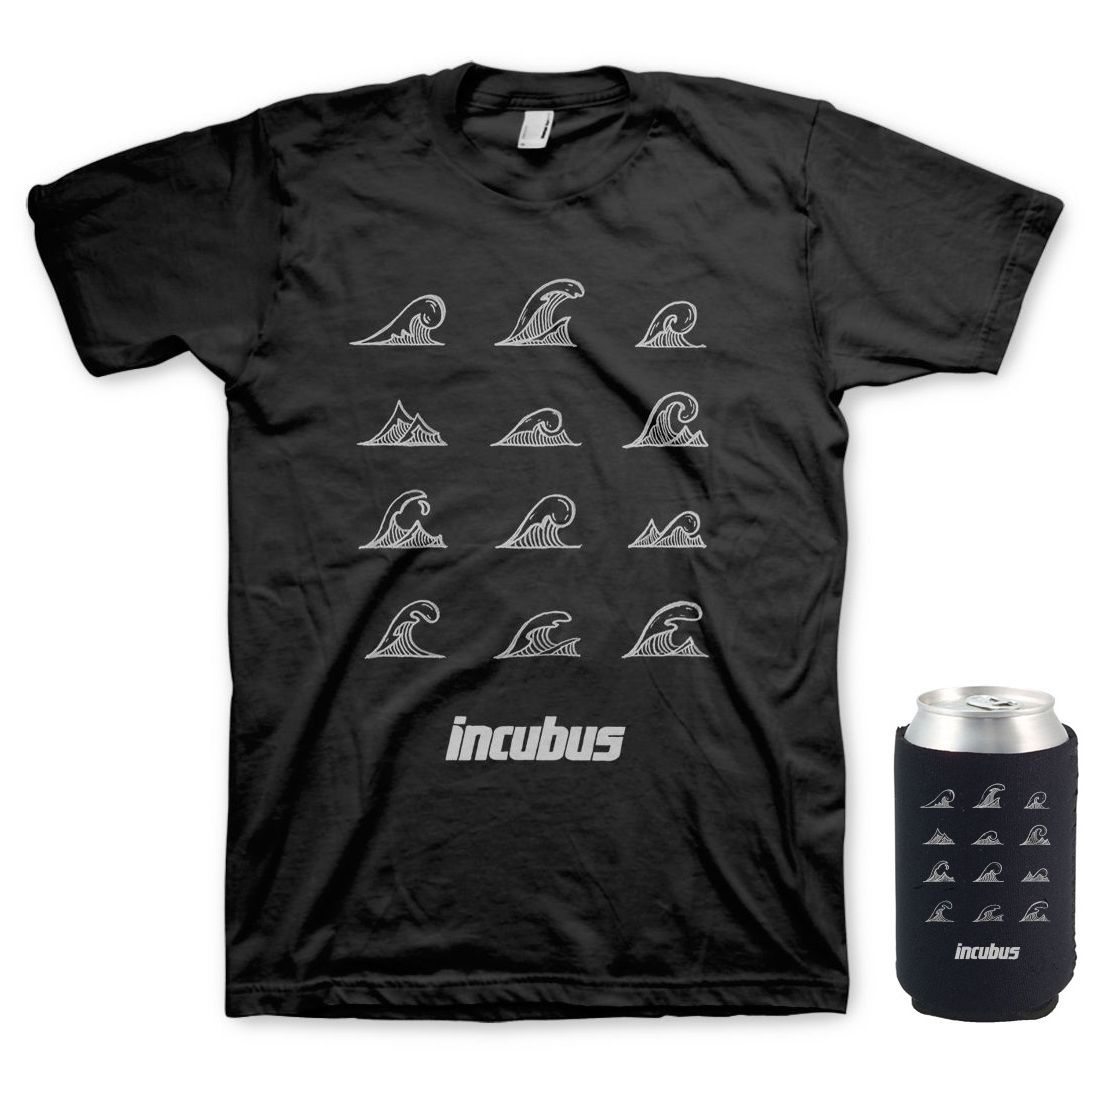 Incubus waves t shirt koozie bundle musictoday superstore for Shirts and apparel koozie